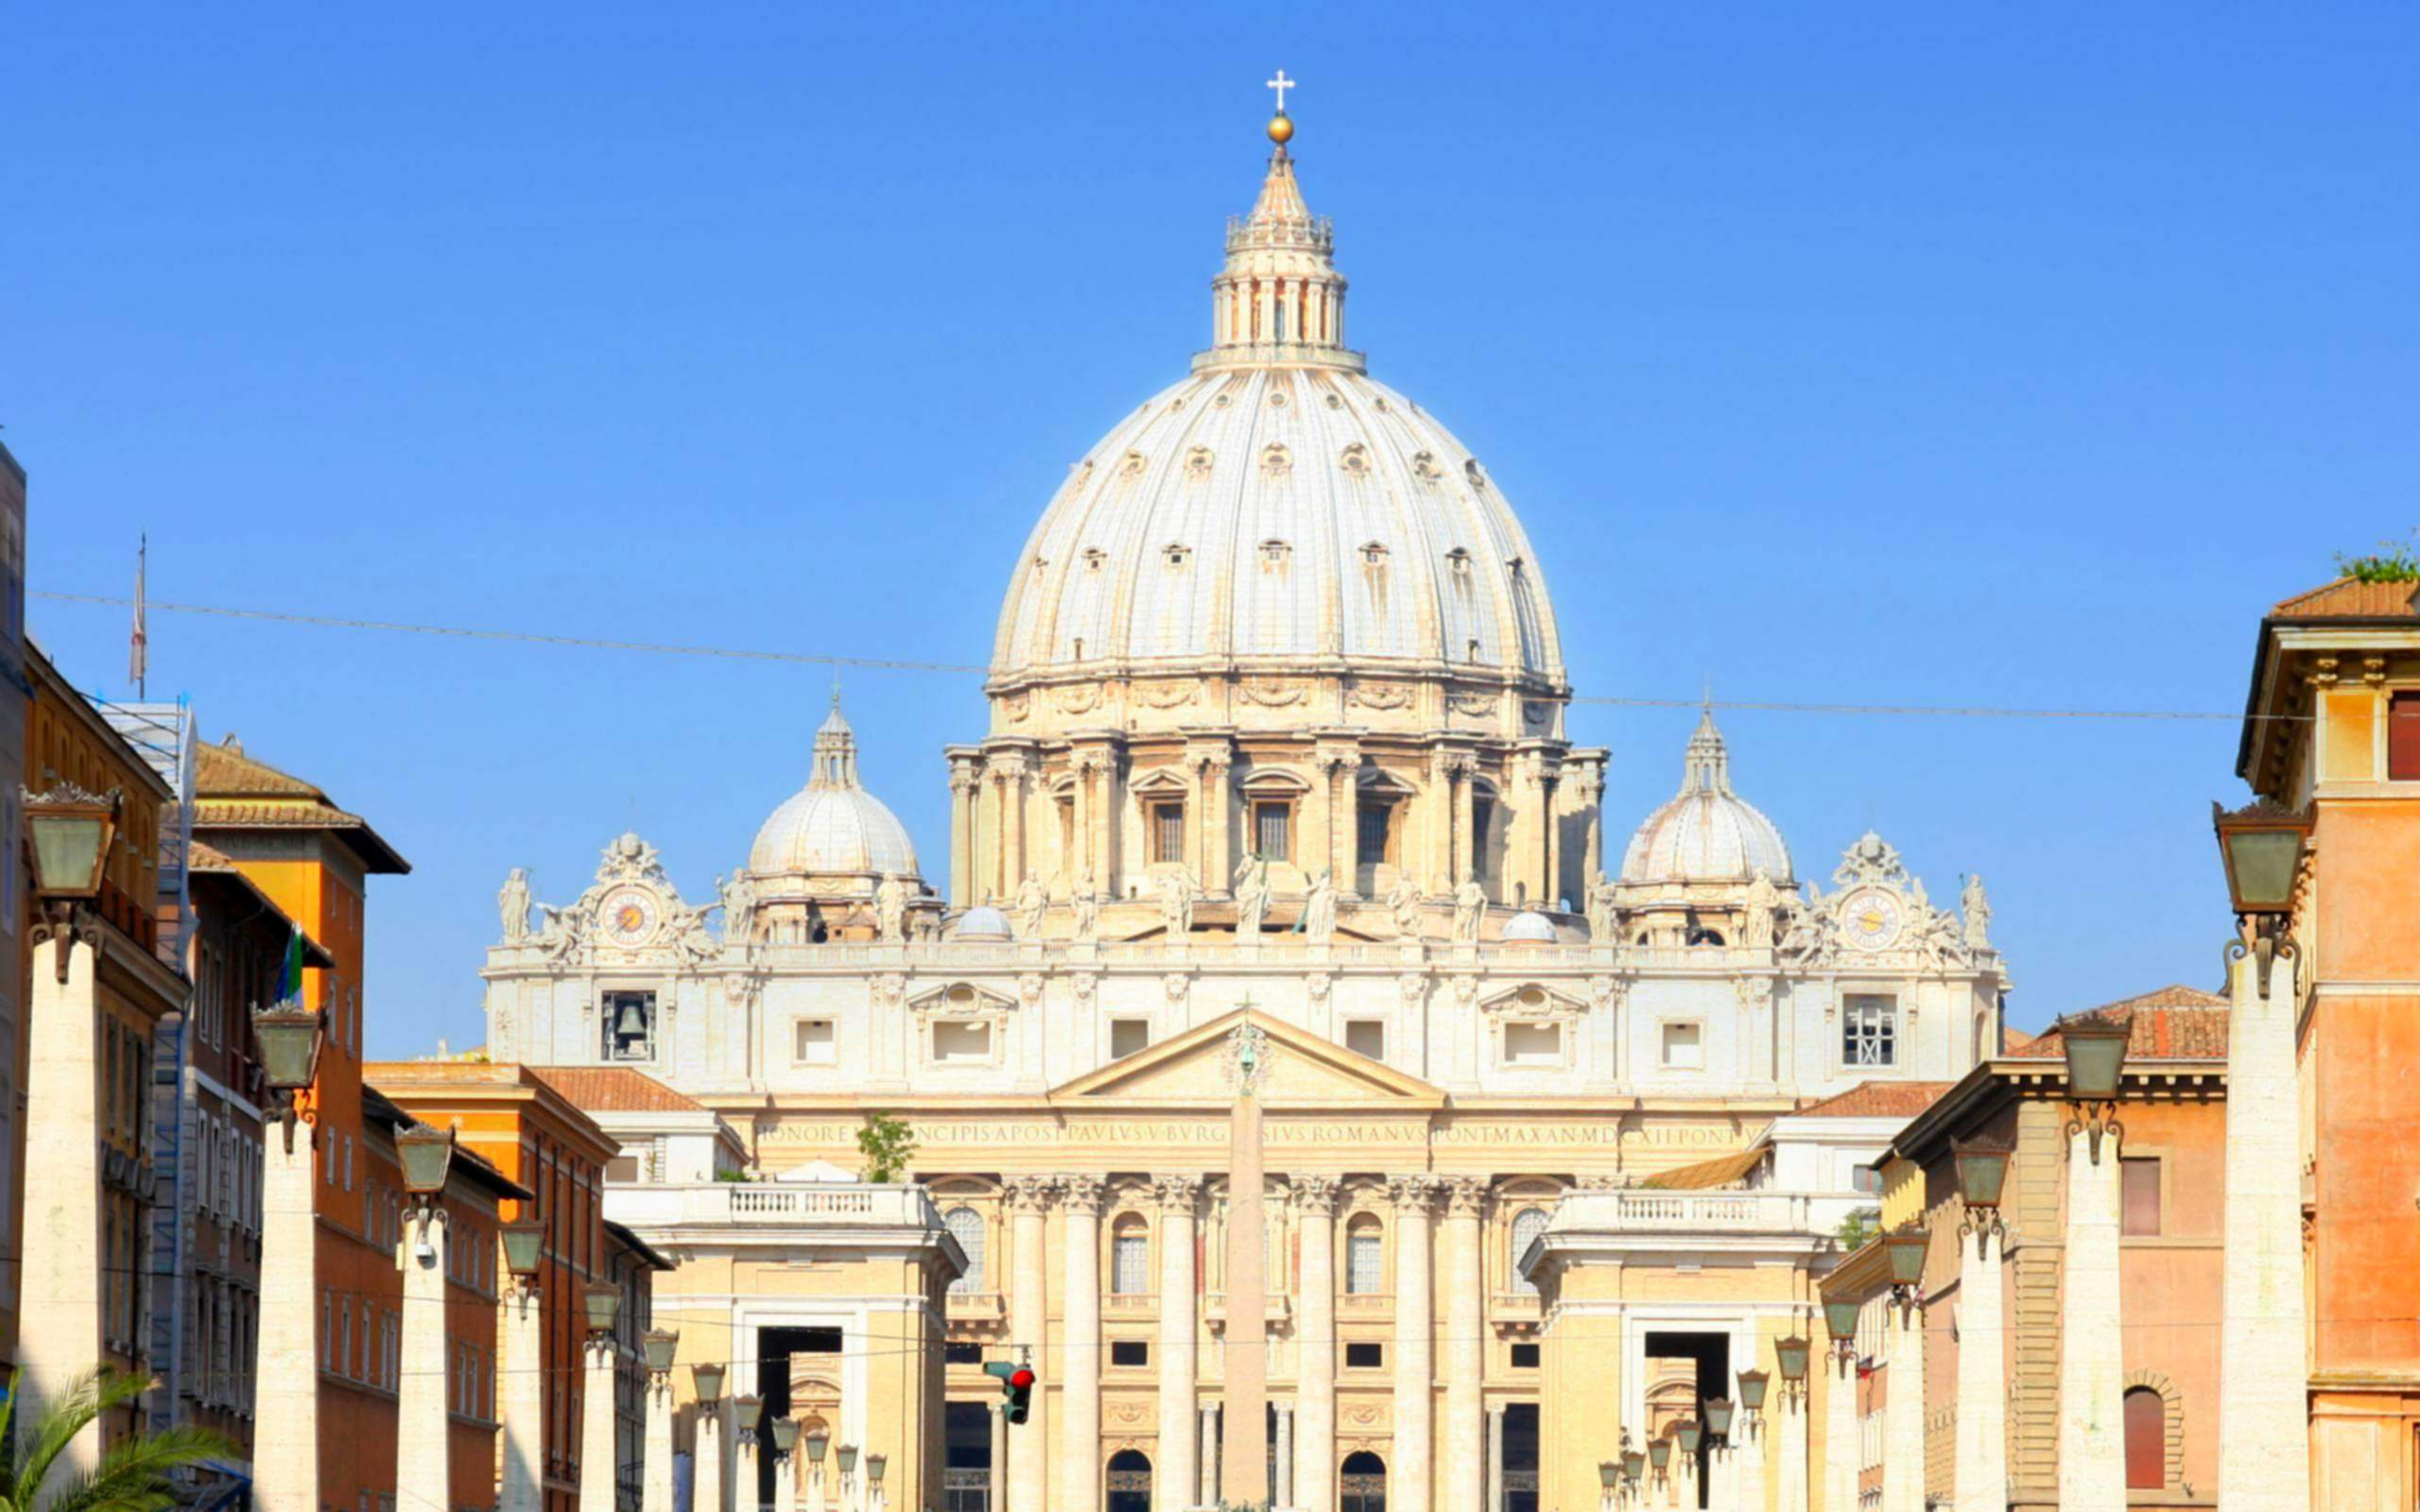 Roma: Basilica Of St. Peter In The Vatican